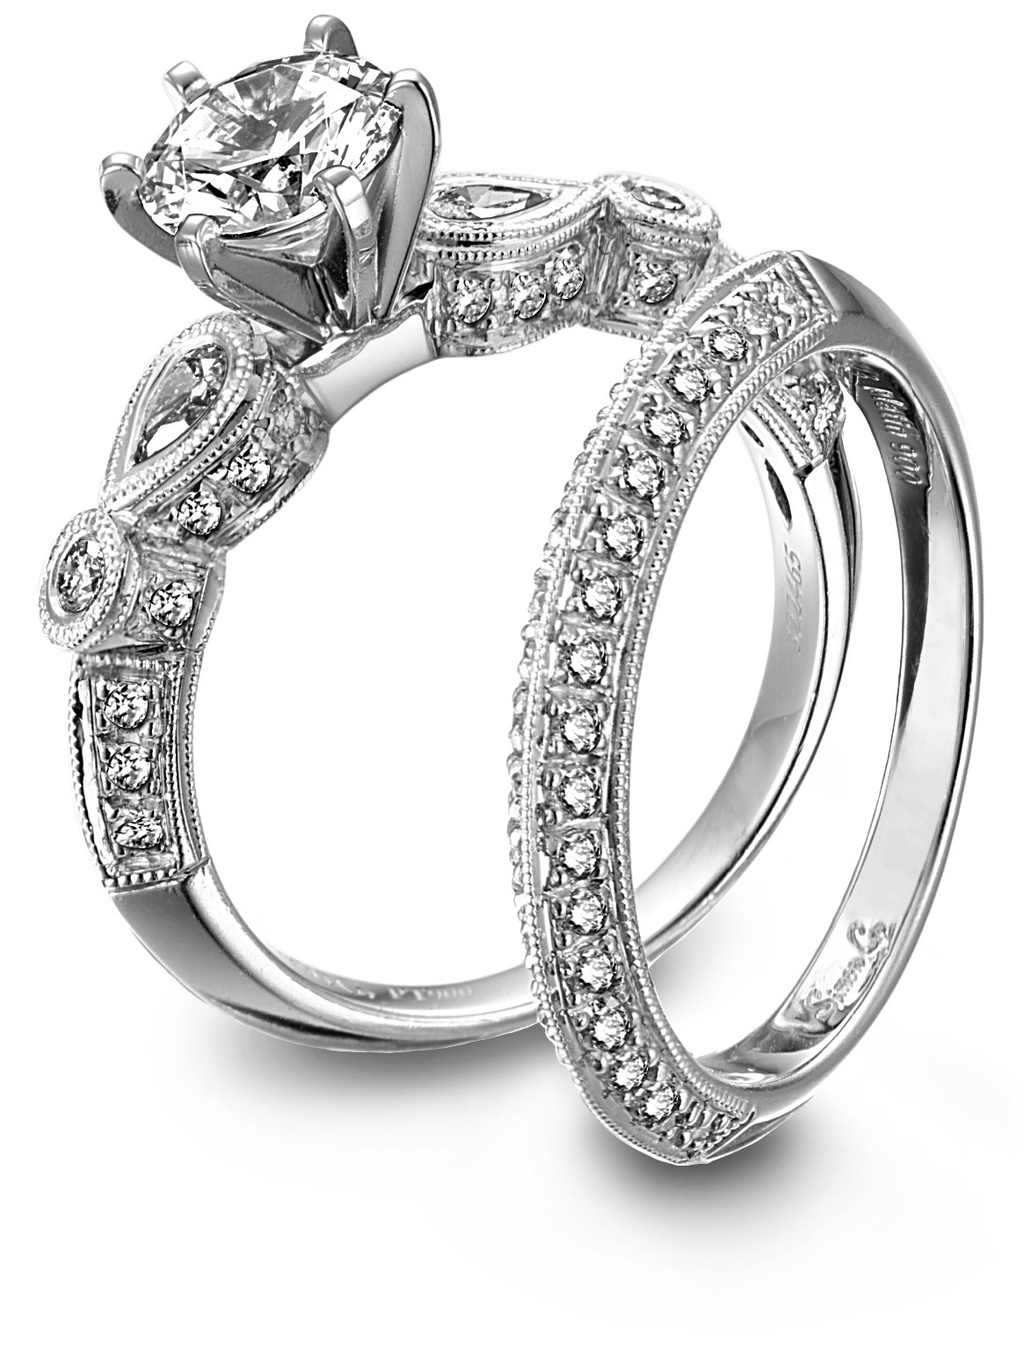 diamond and platinum engagement ring and wedding band set With simon g wedding ring